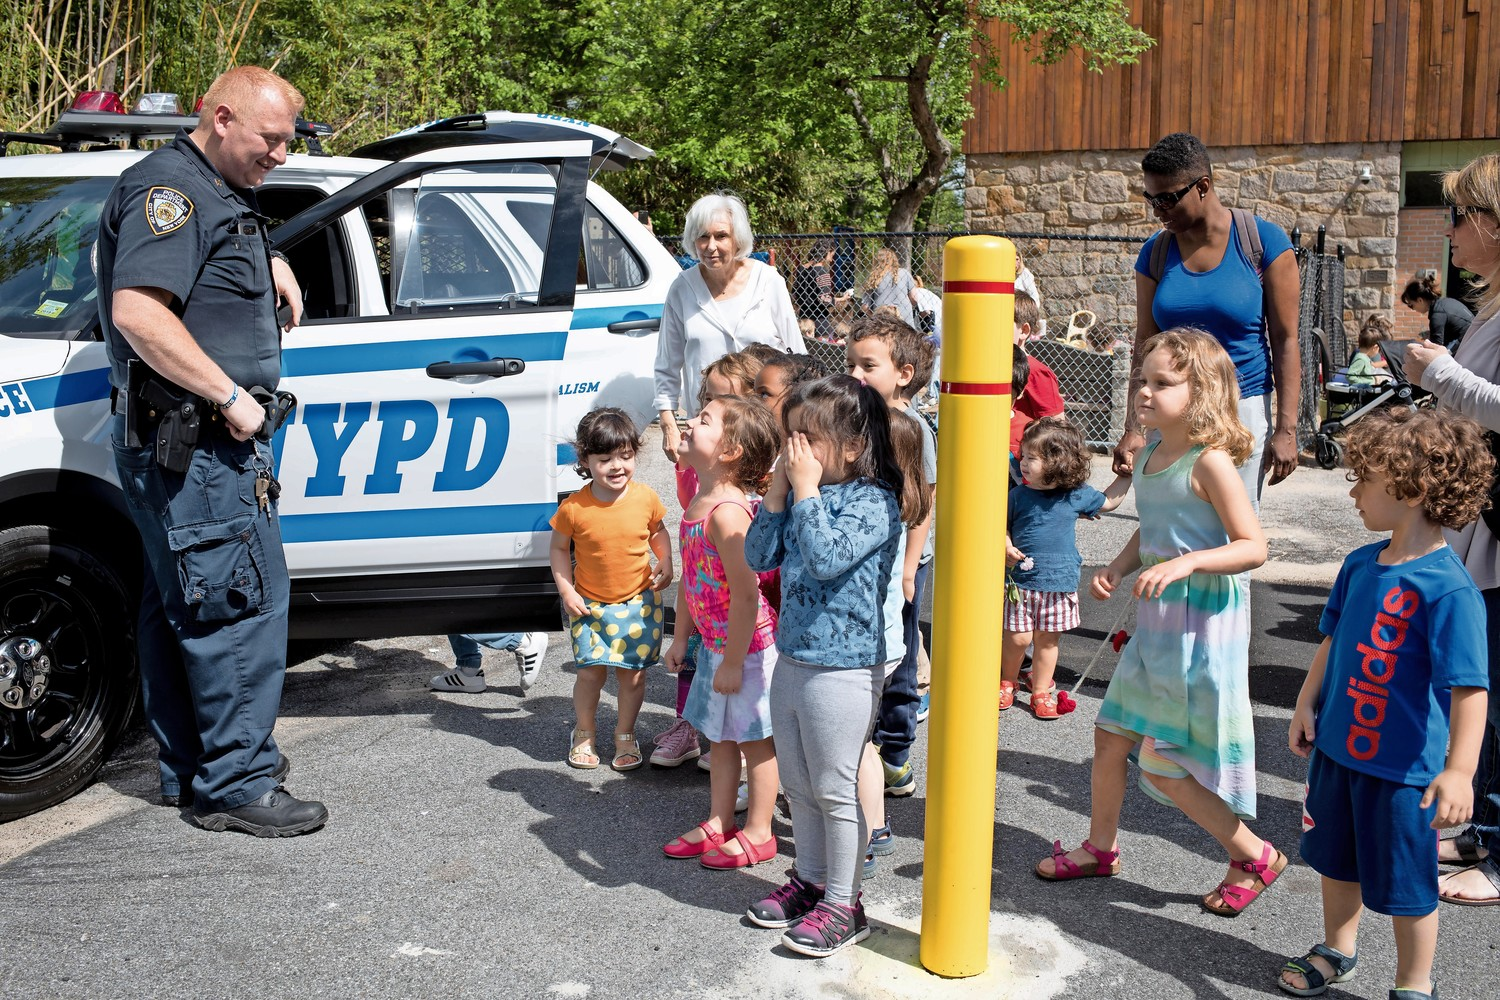 Neighborhood coordination officer Robert Edsall talks with kids outside of his police car during Truck Day at the Riverdale Temple.